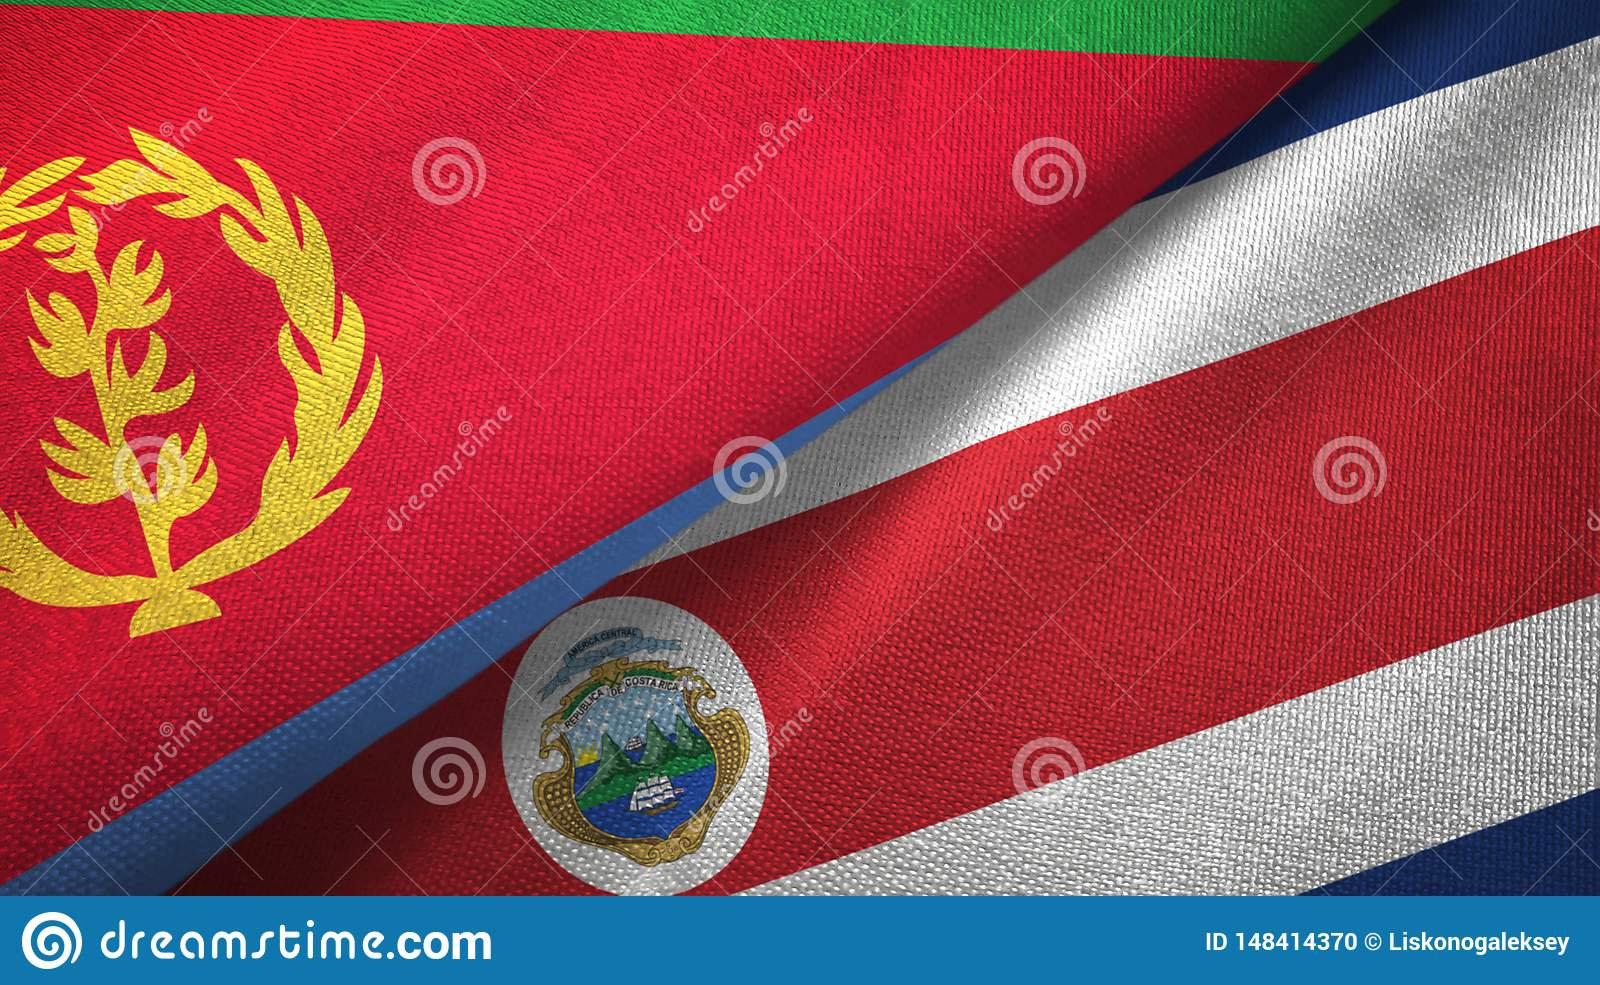 Eritrea and Costa Rica two flags textile cloth, fabric texture